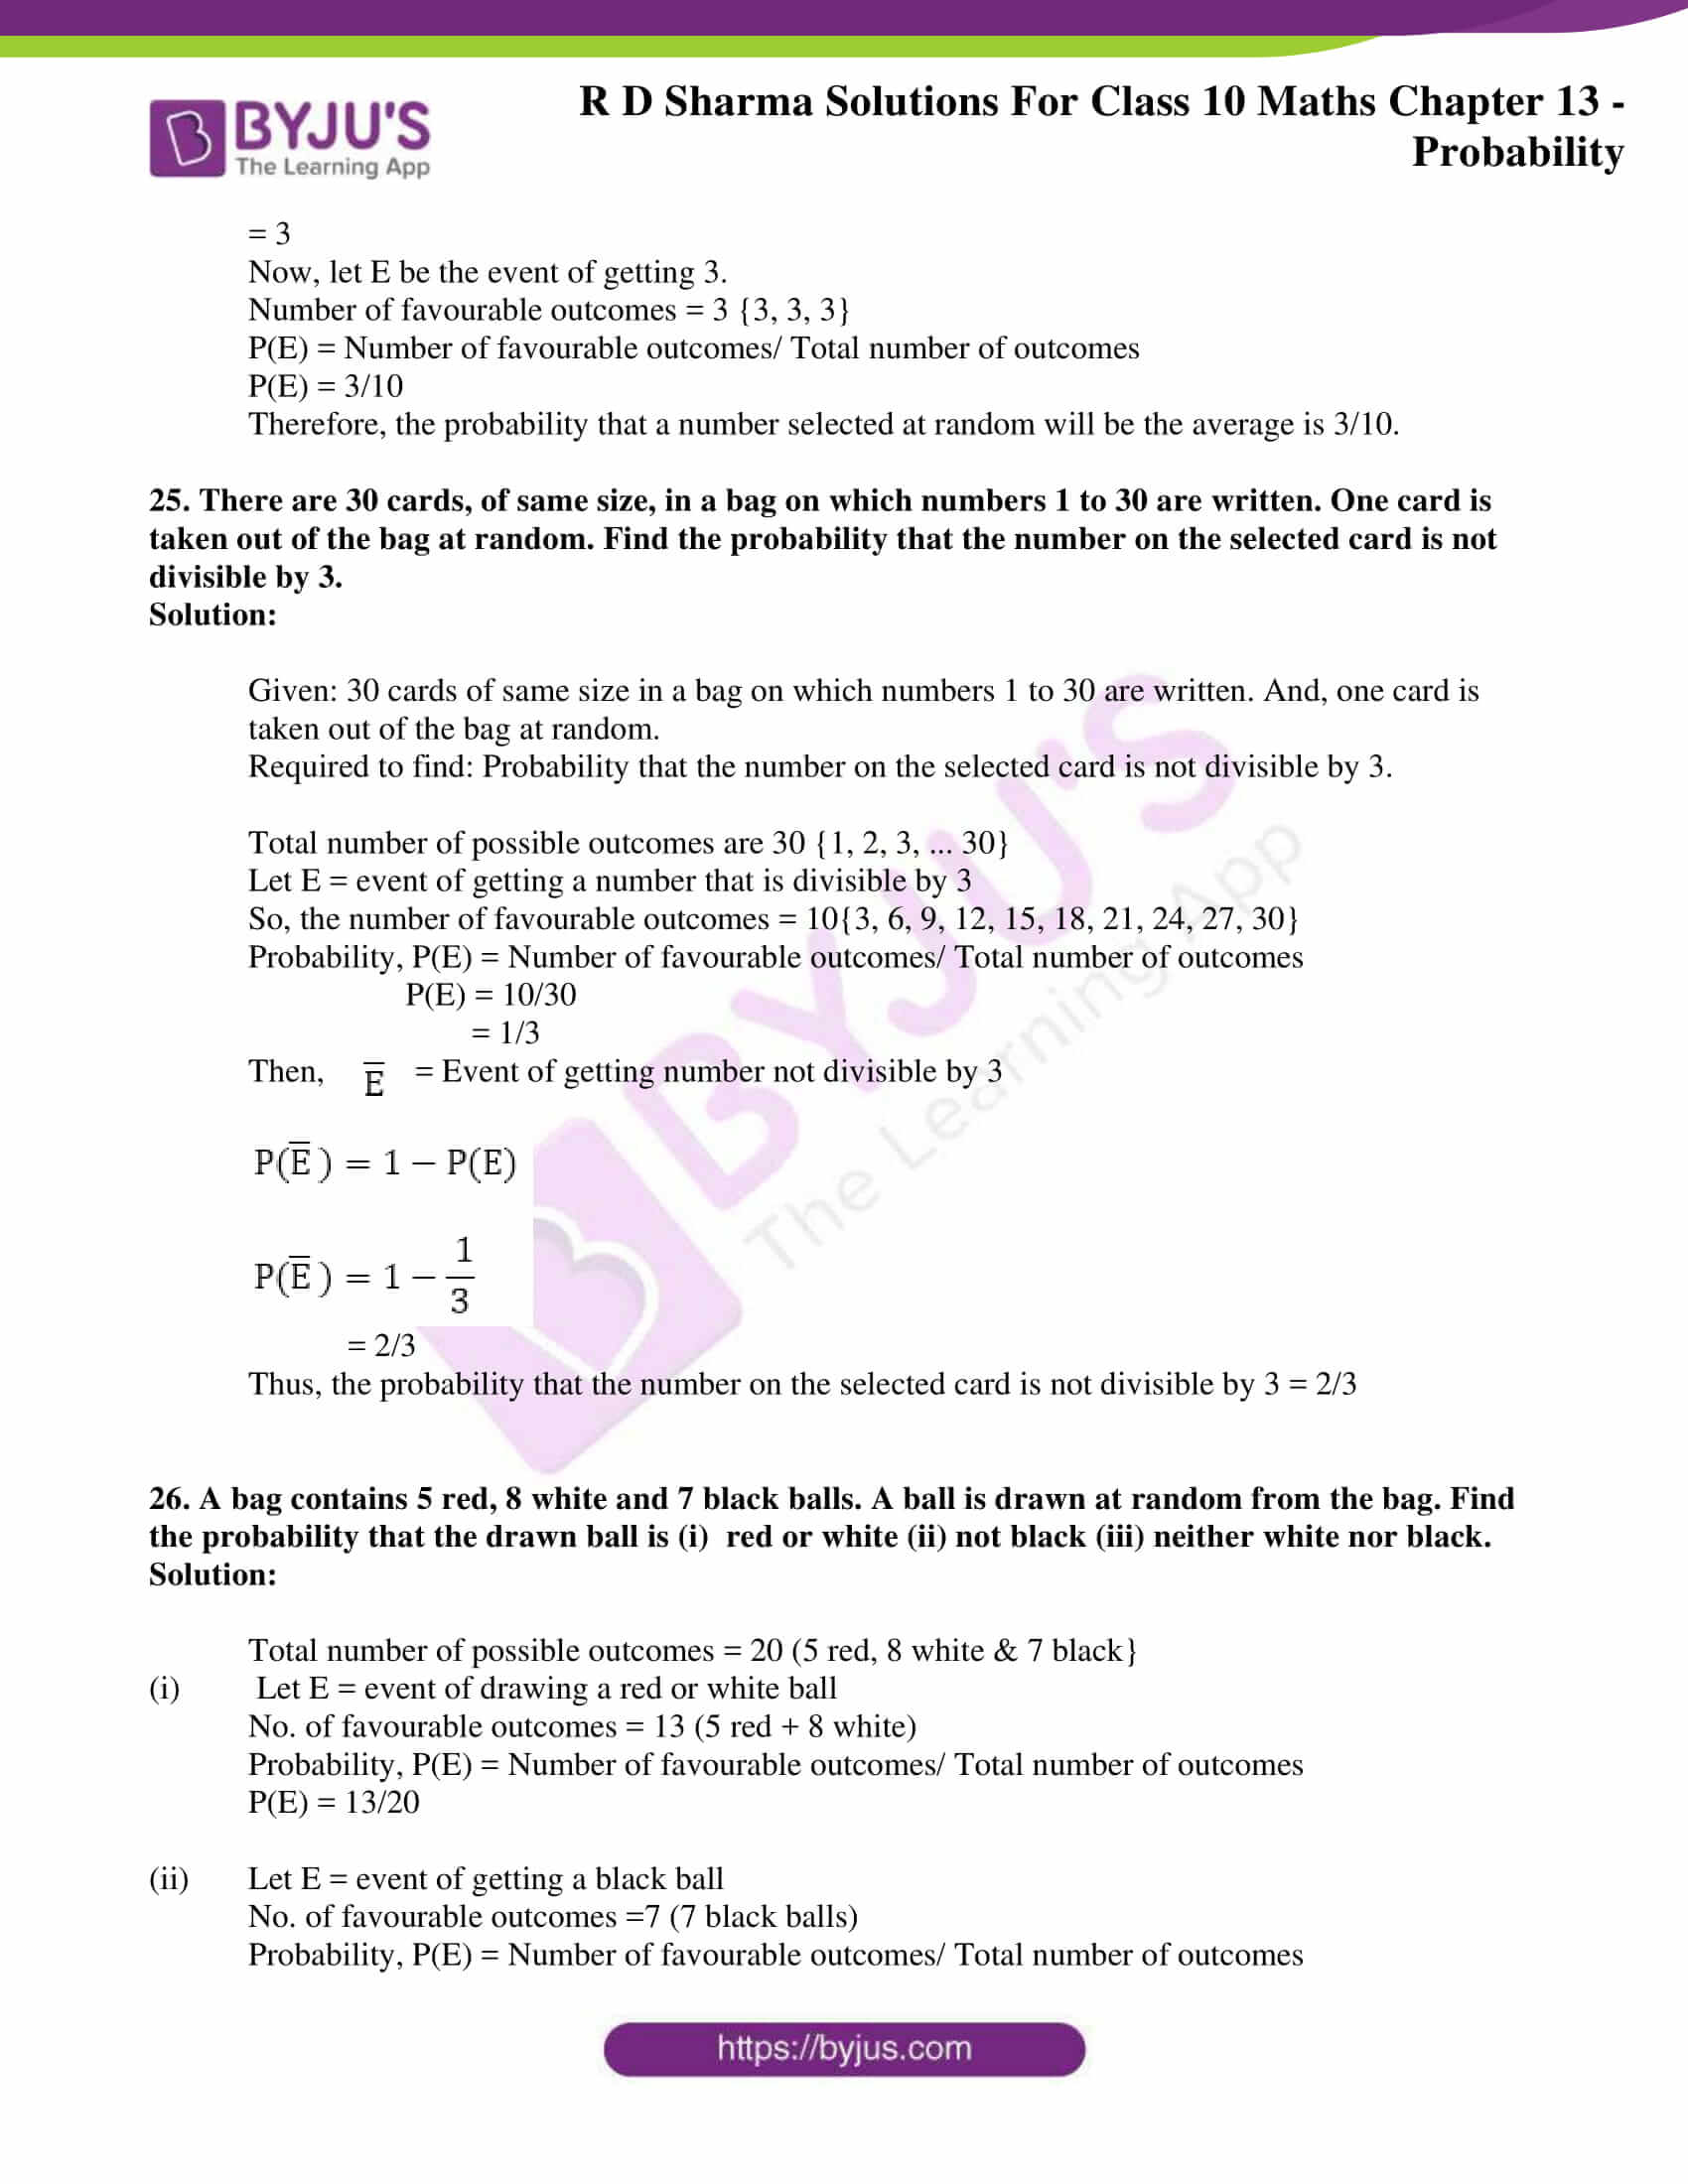 rd sharma solutions for class 10 chapter 13